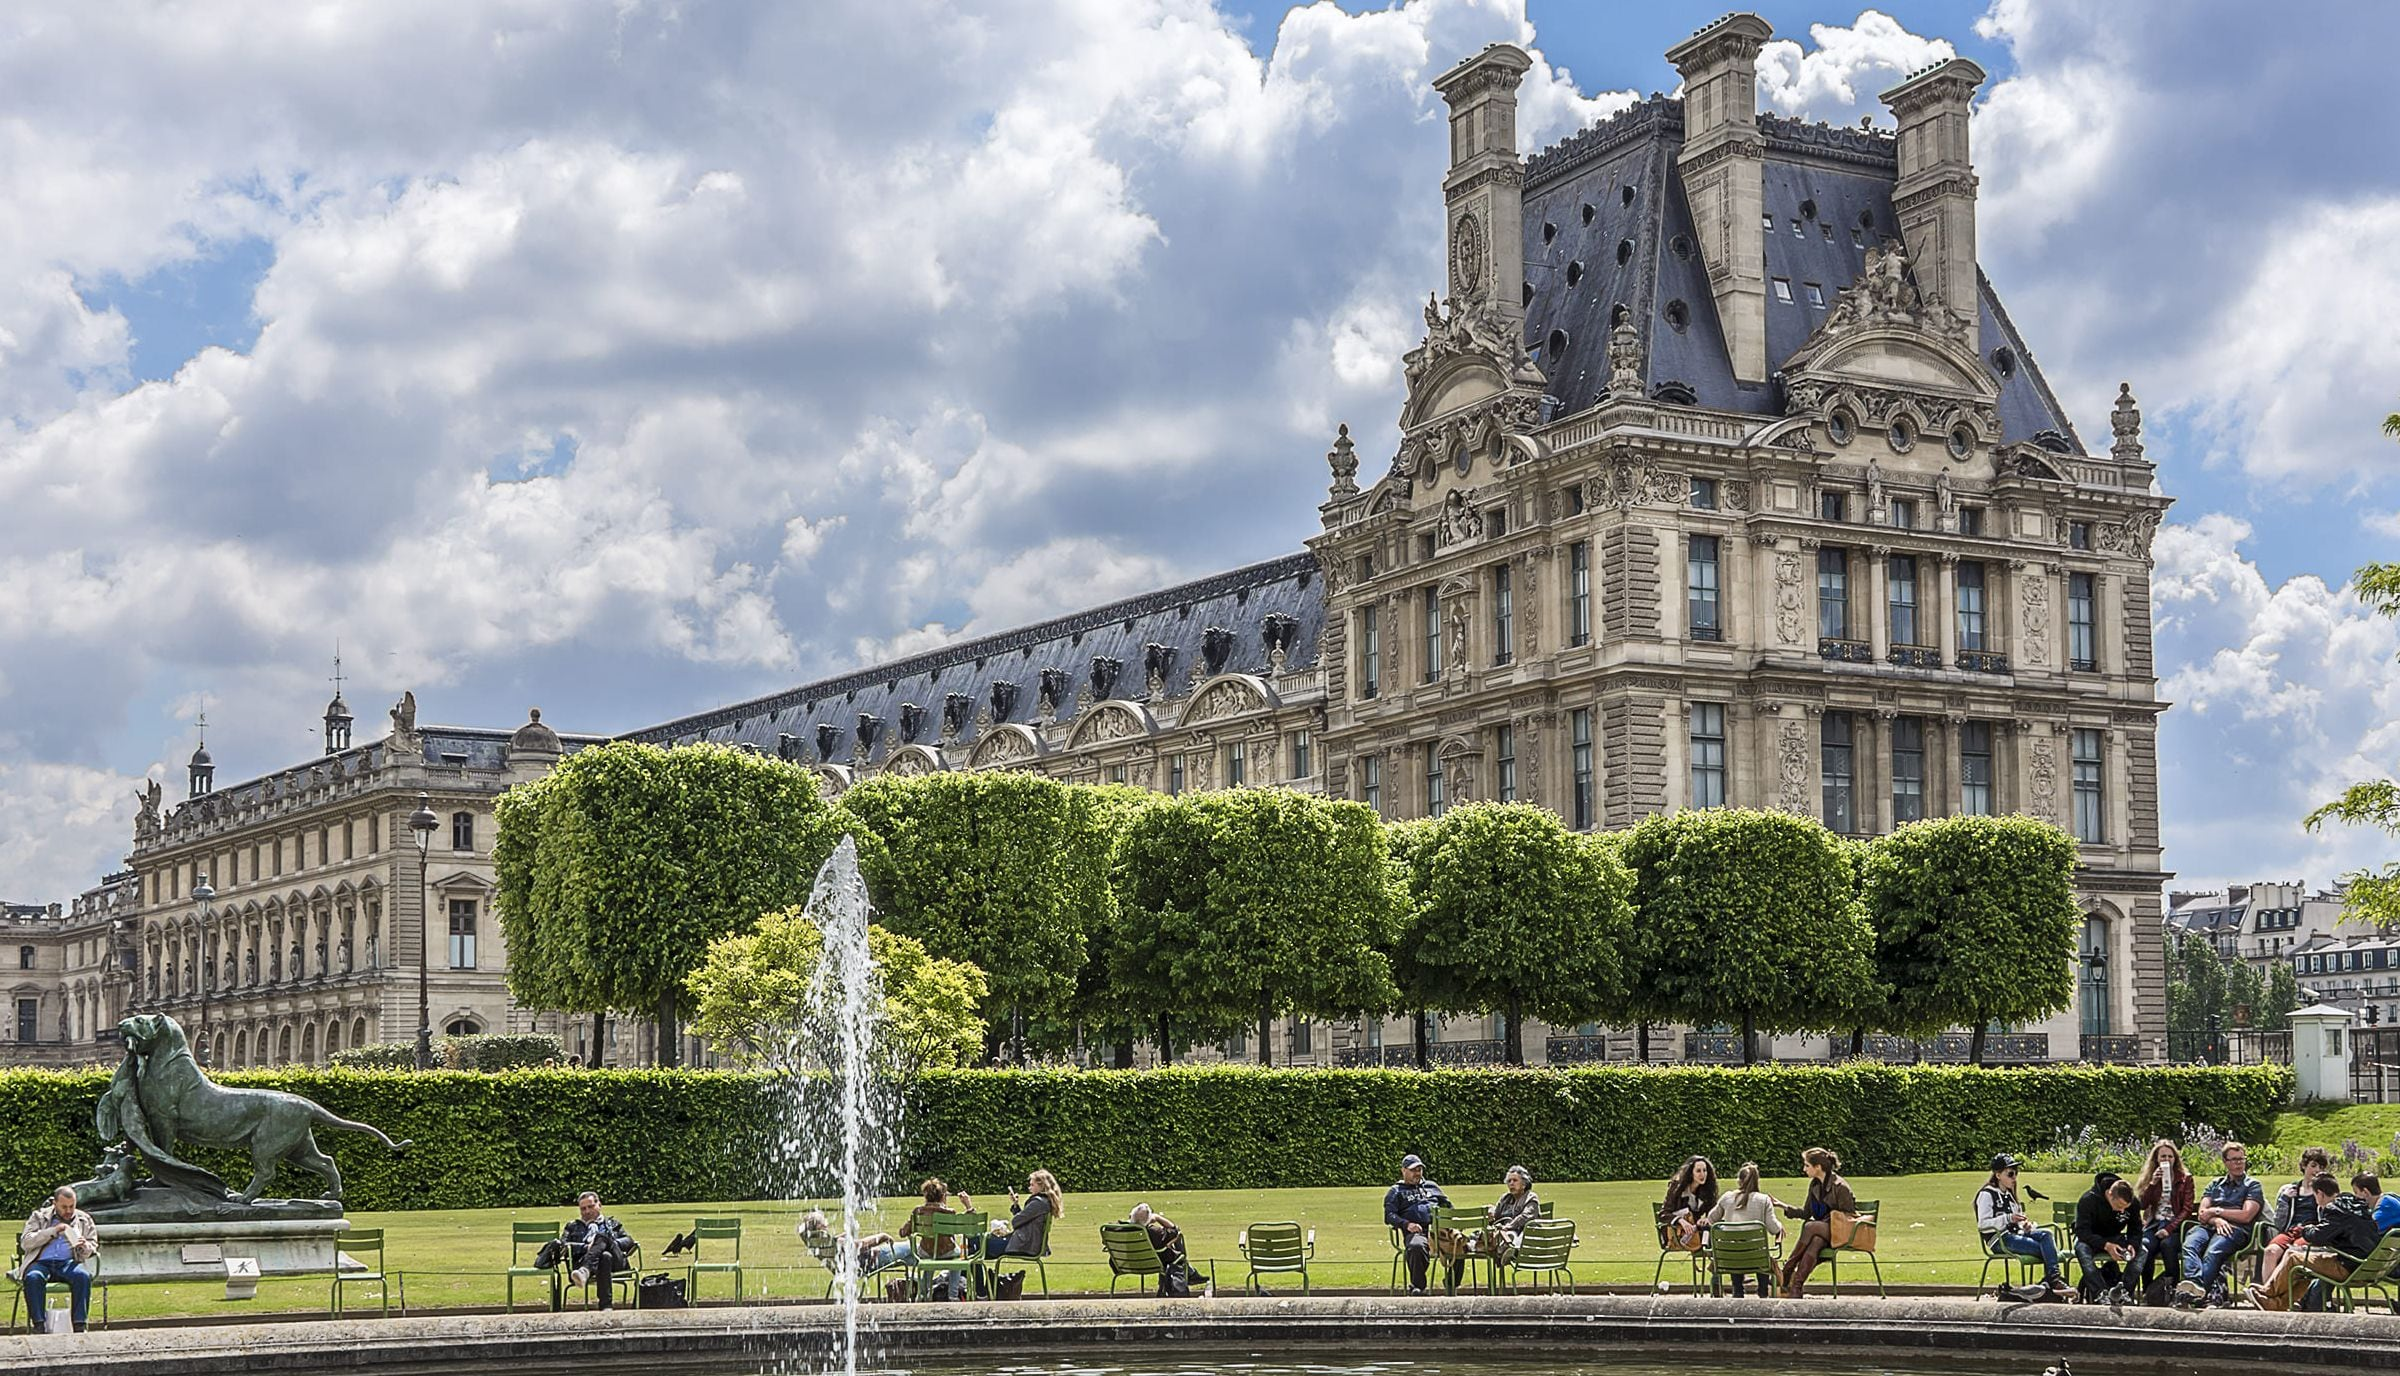 End the tour at theTuileries Garden